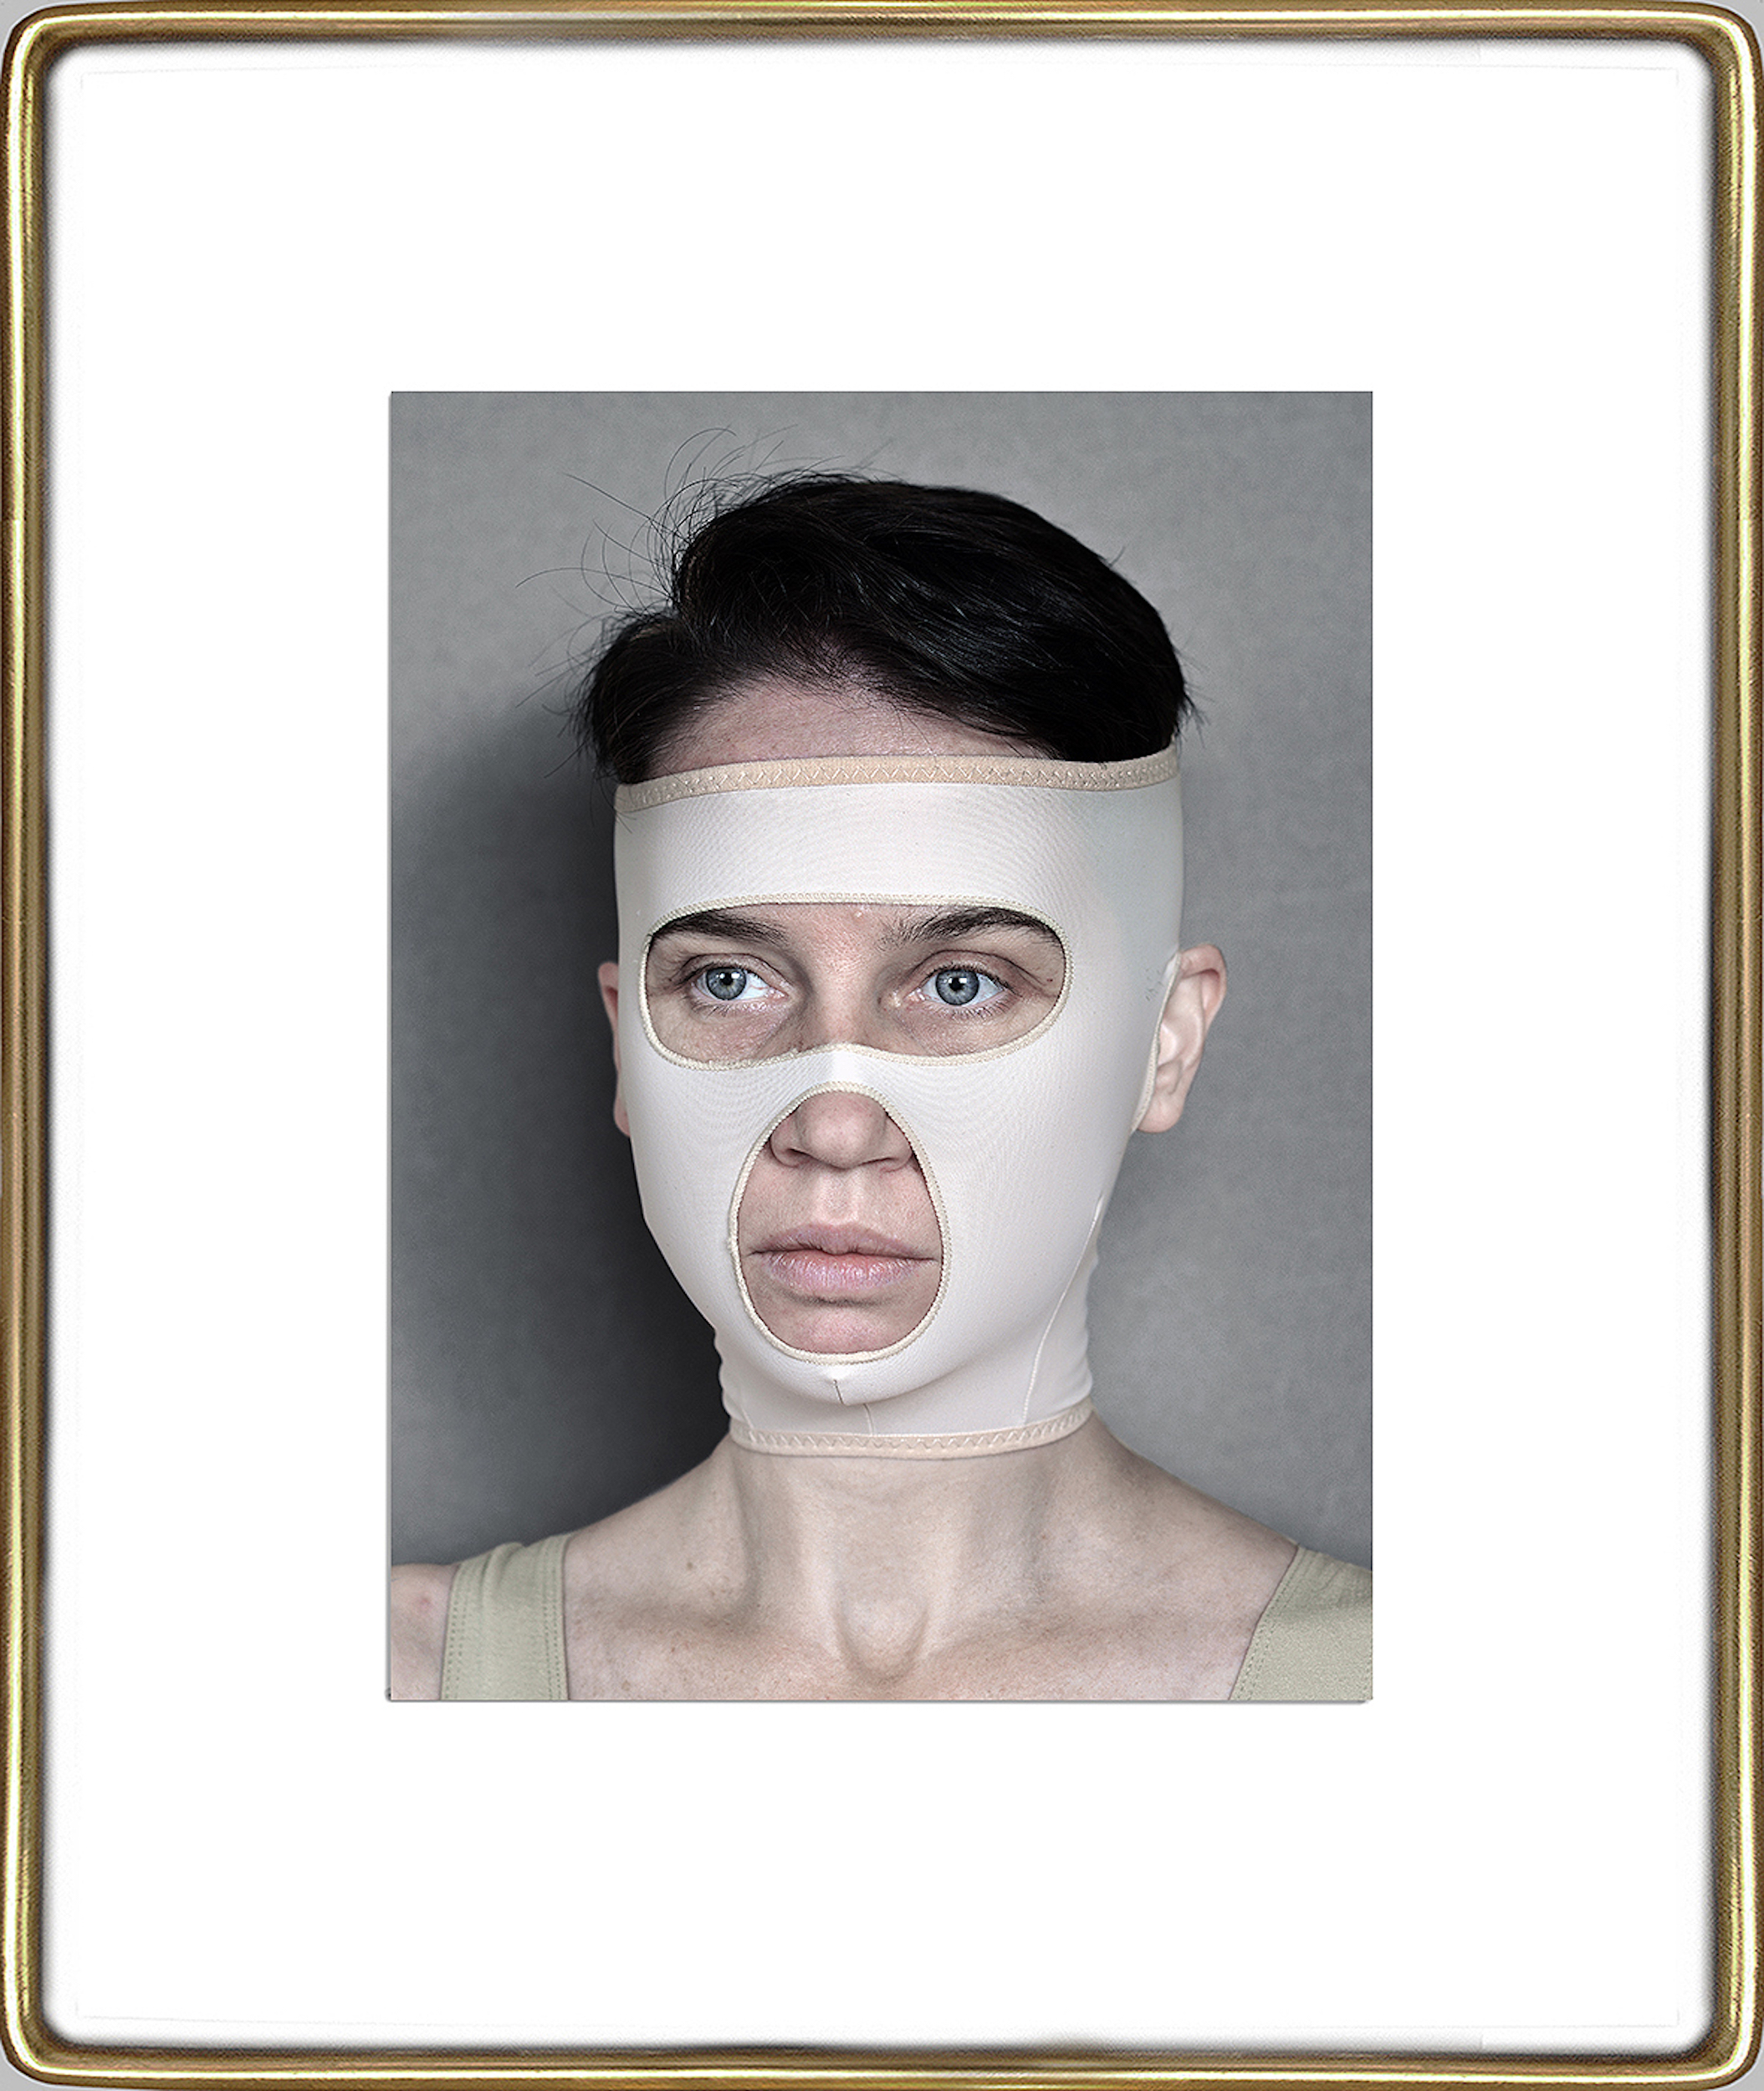 Aneta Grzeszykowska   Beauty Mask #4 , 2017  Pigment ink on cotton paper  16.93 x 12.40 inches  23.82 x 19.23 inches (framed)  Edition of 3 + I A.P.